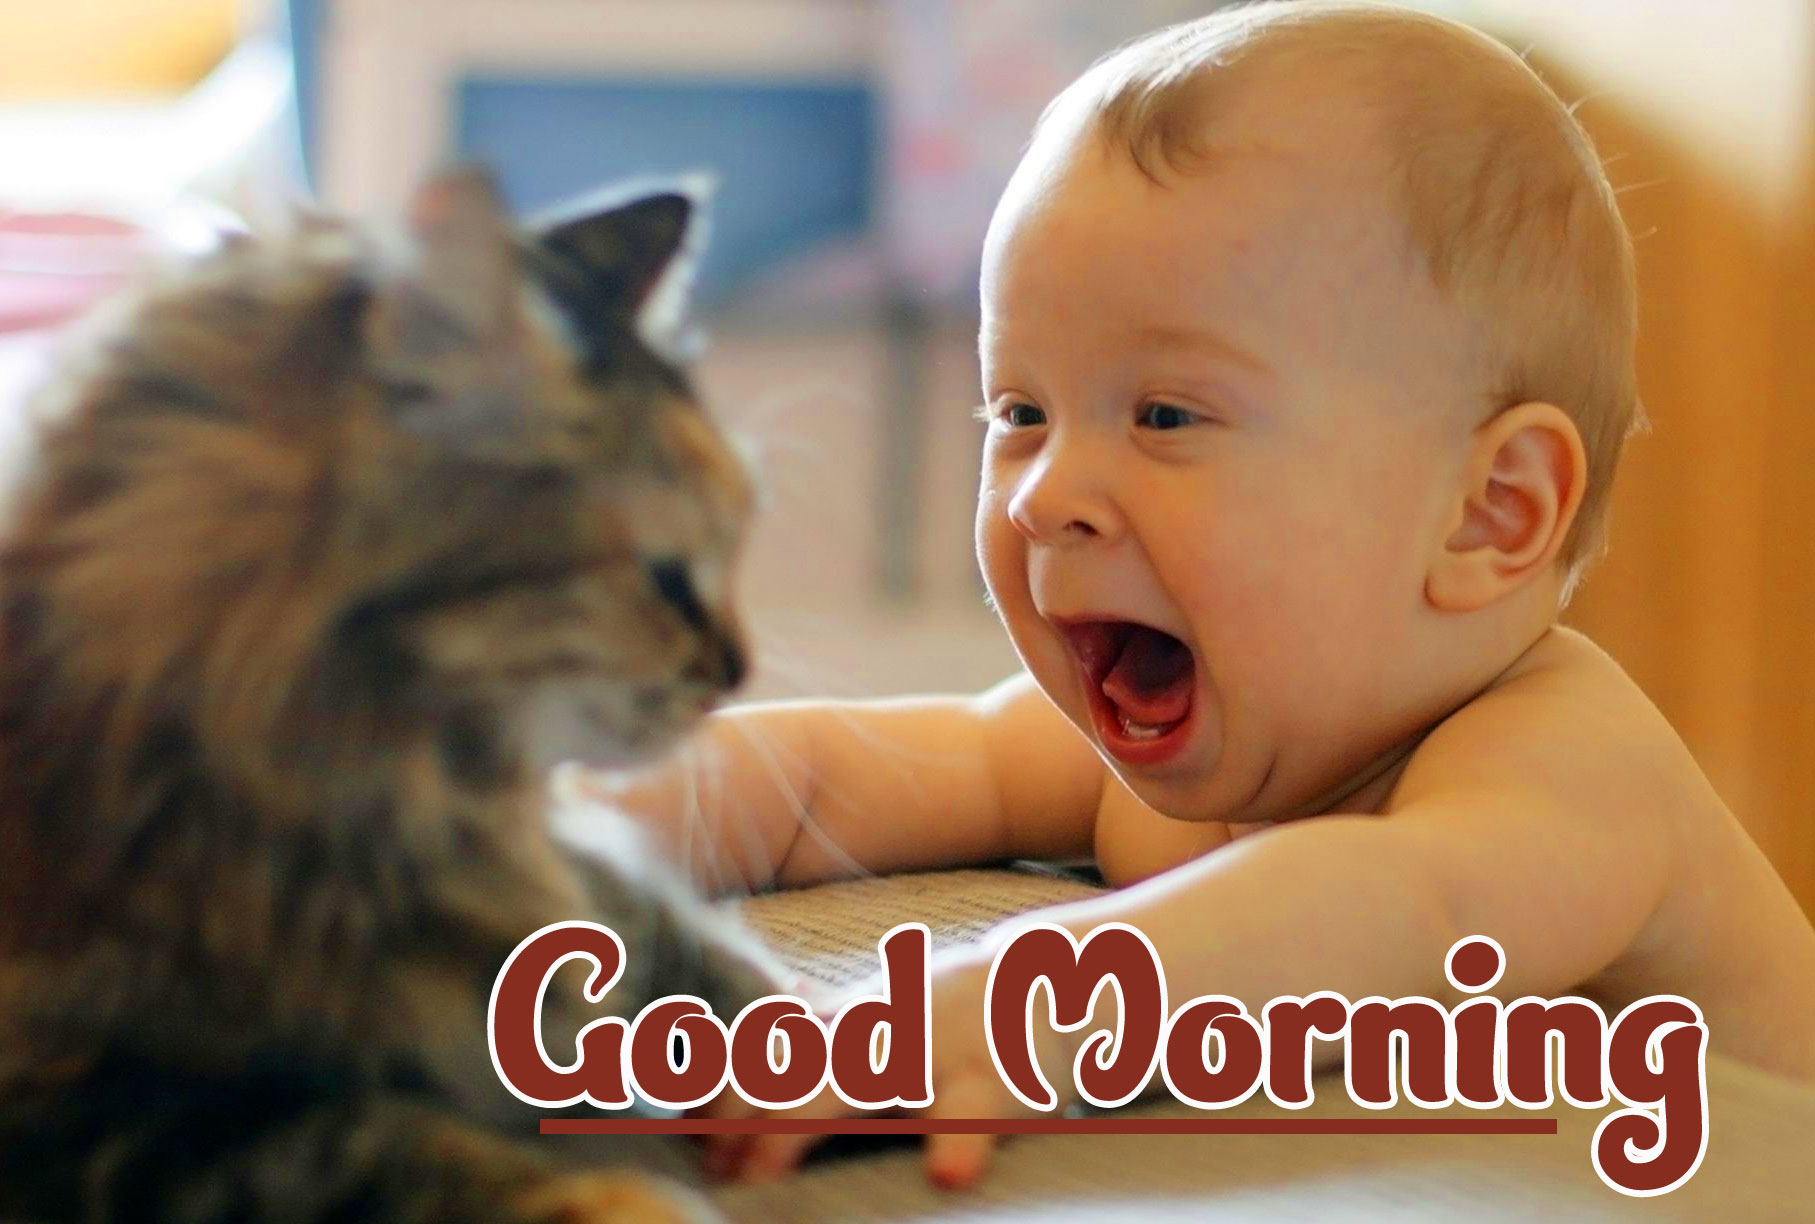 Funny Good Morning Wishes Images Download 34